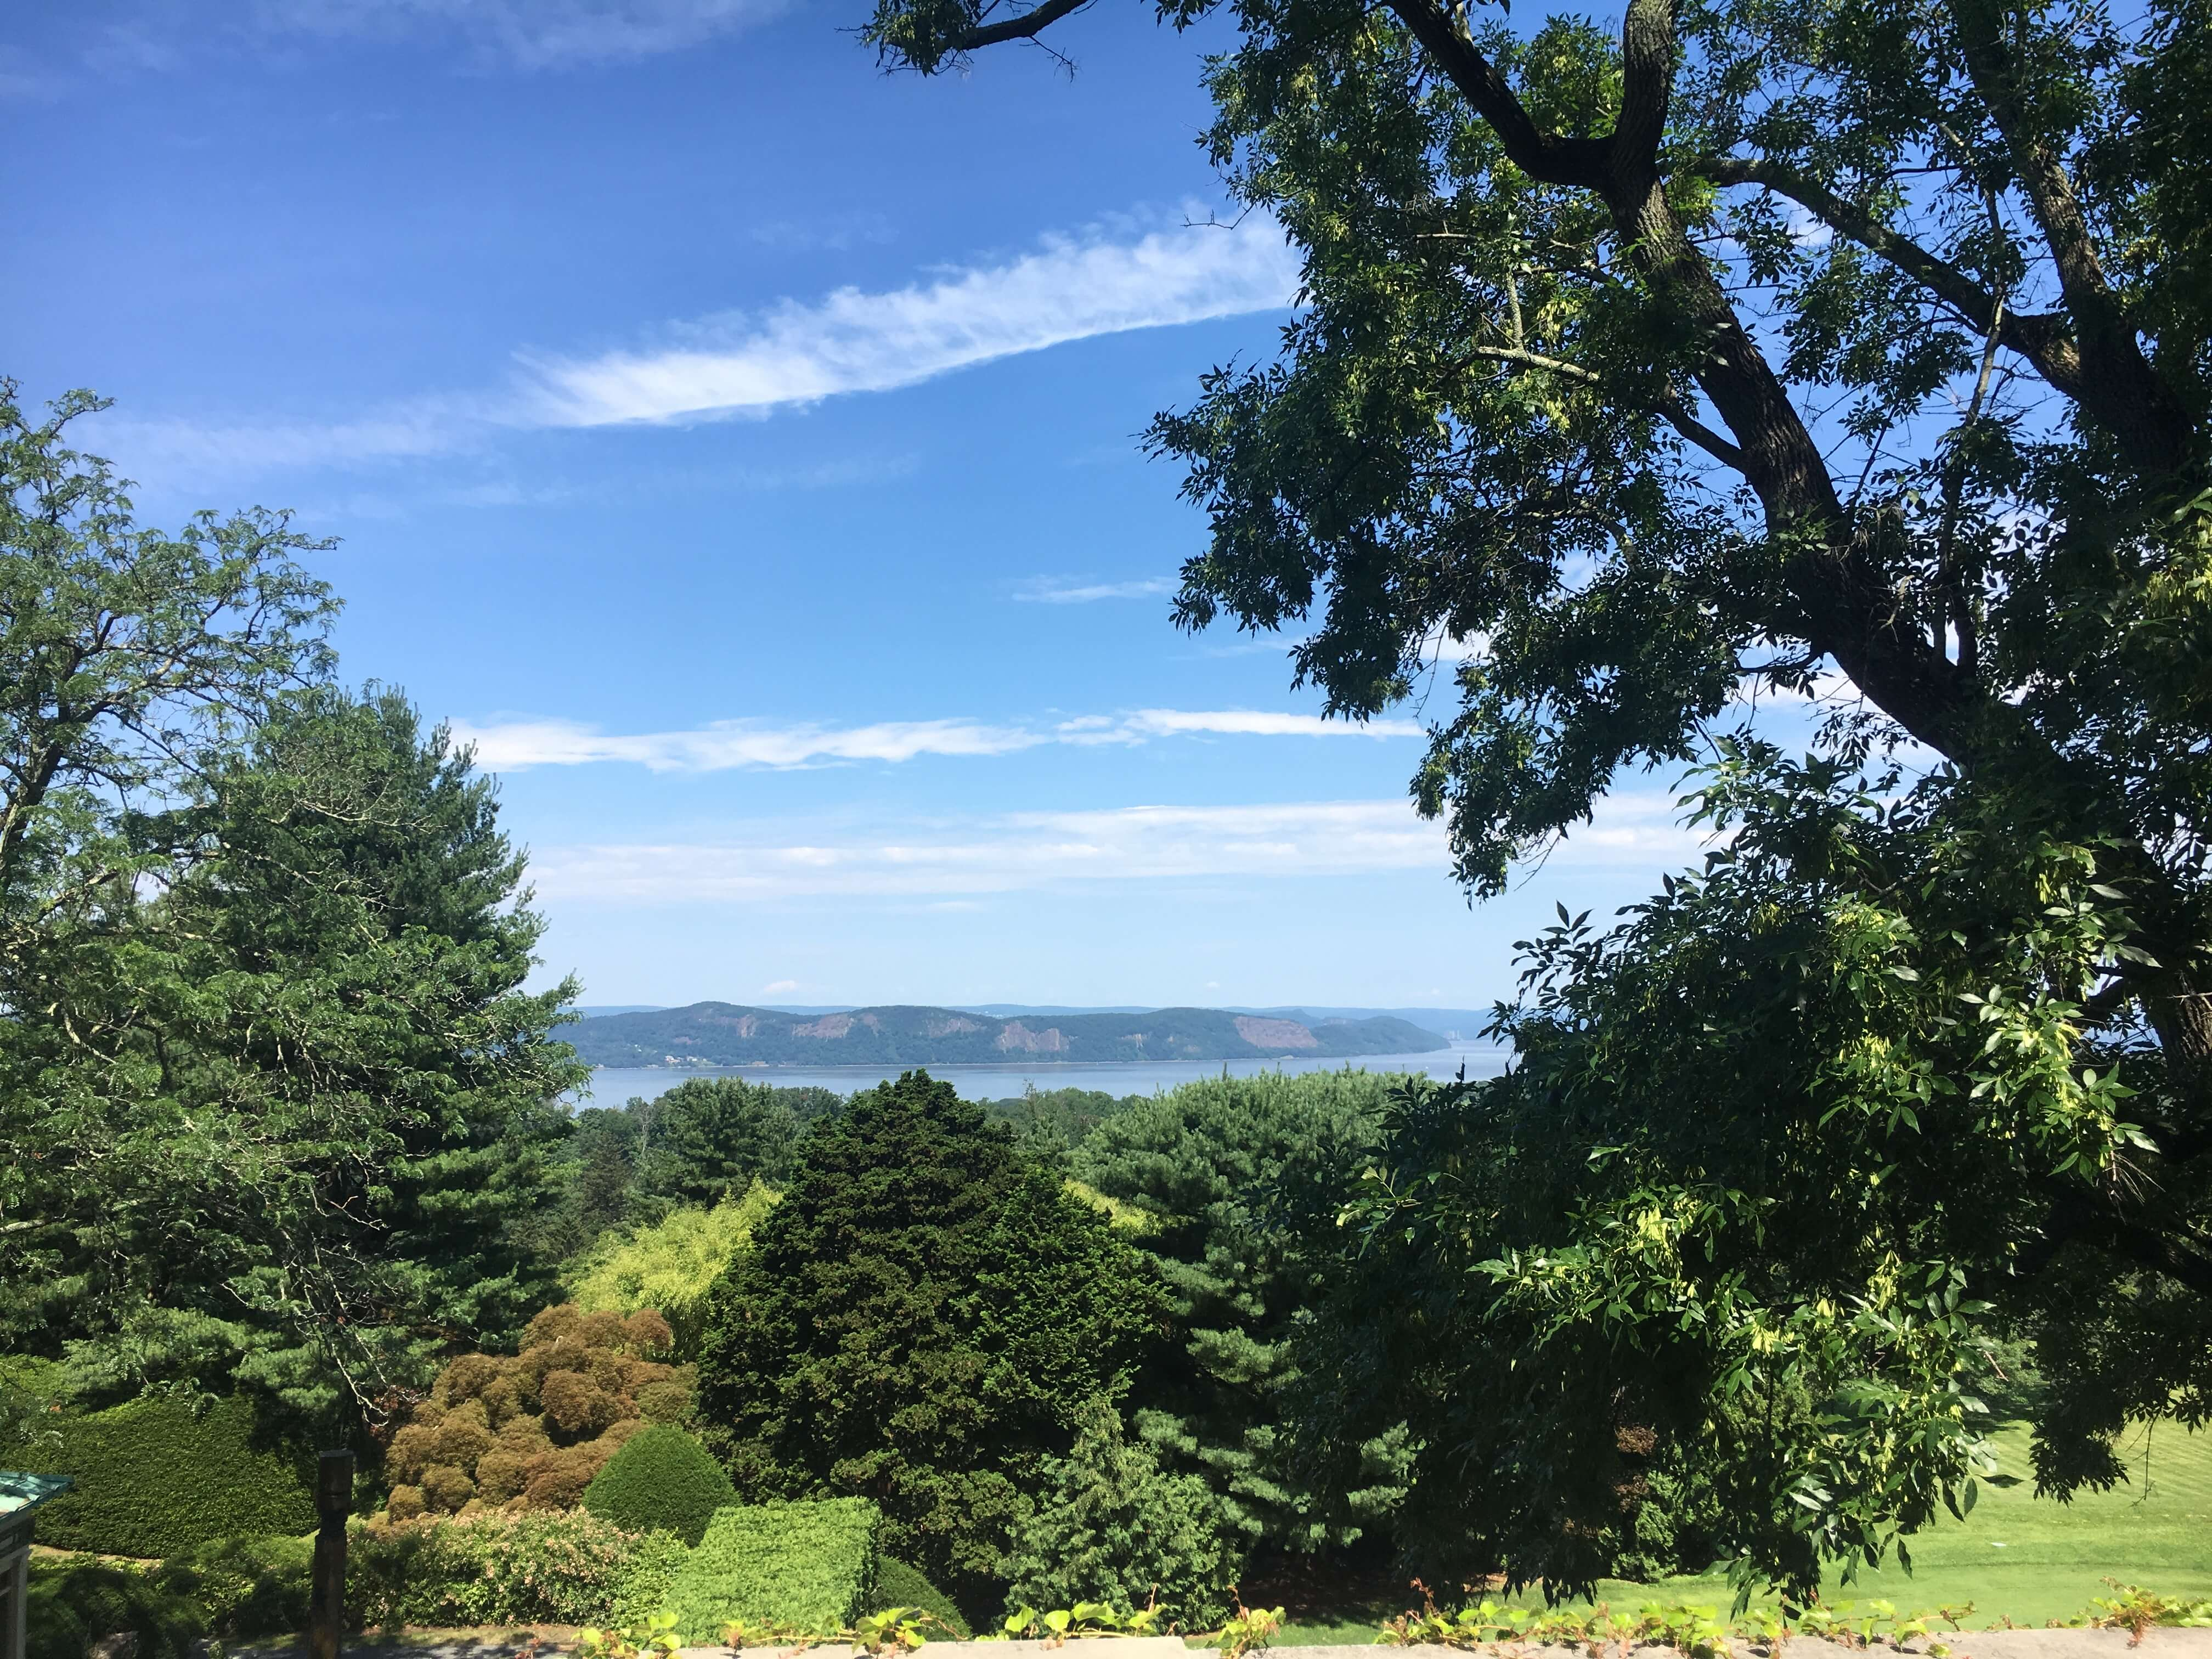 Kykuit views